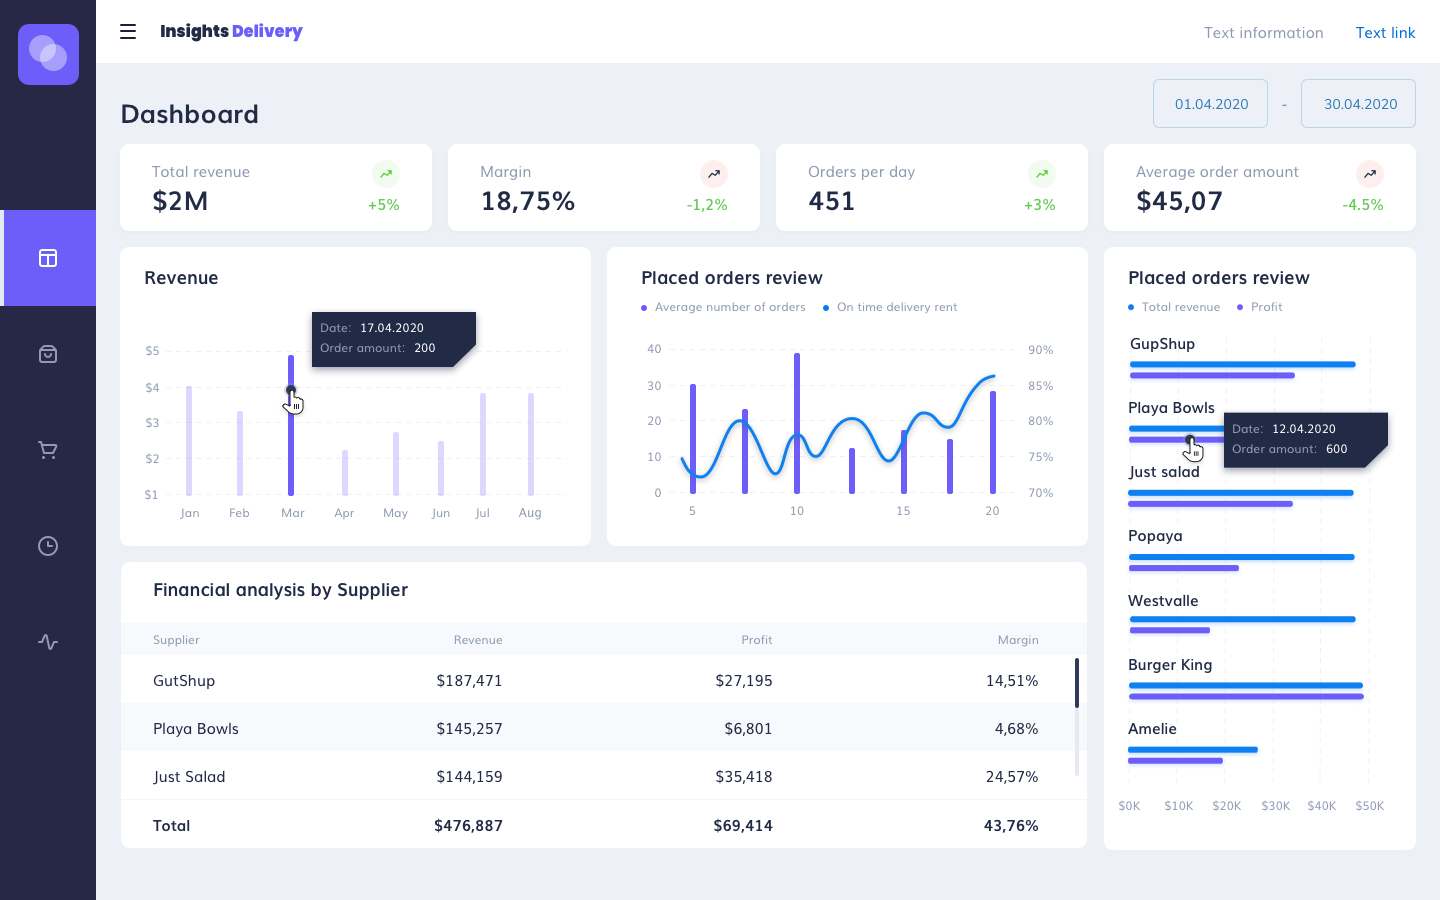 Insights Delivery Dashboard overview